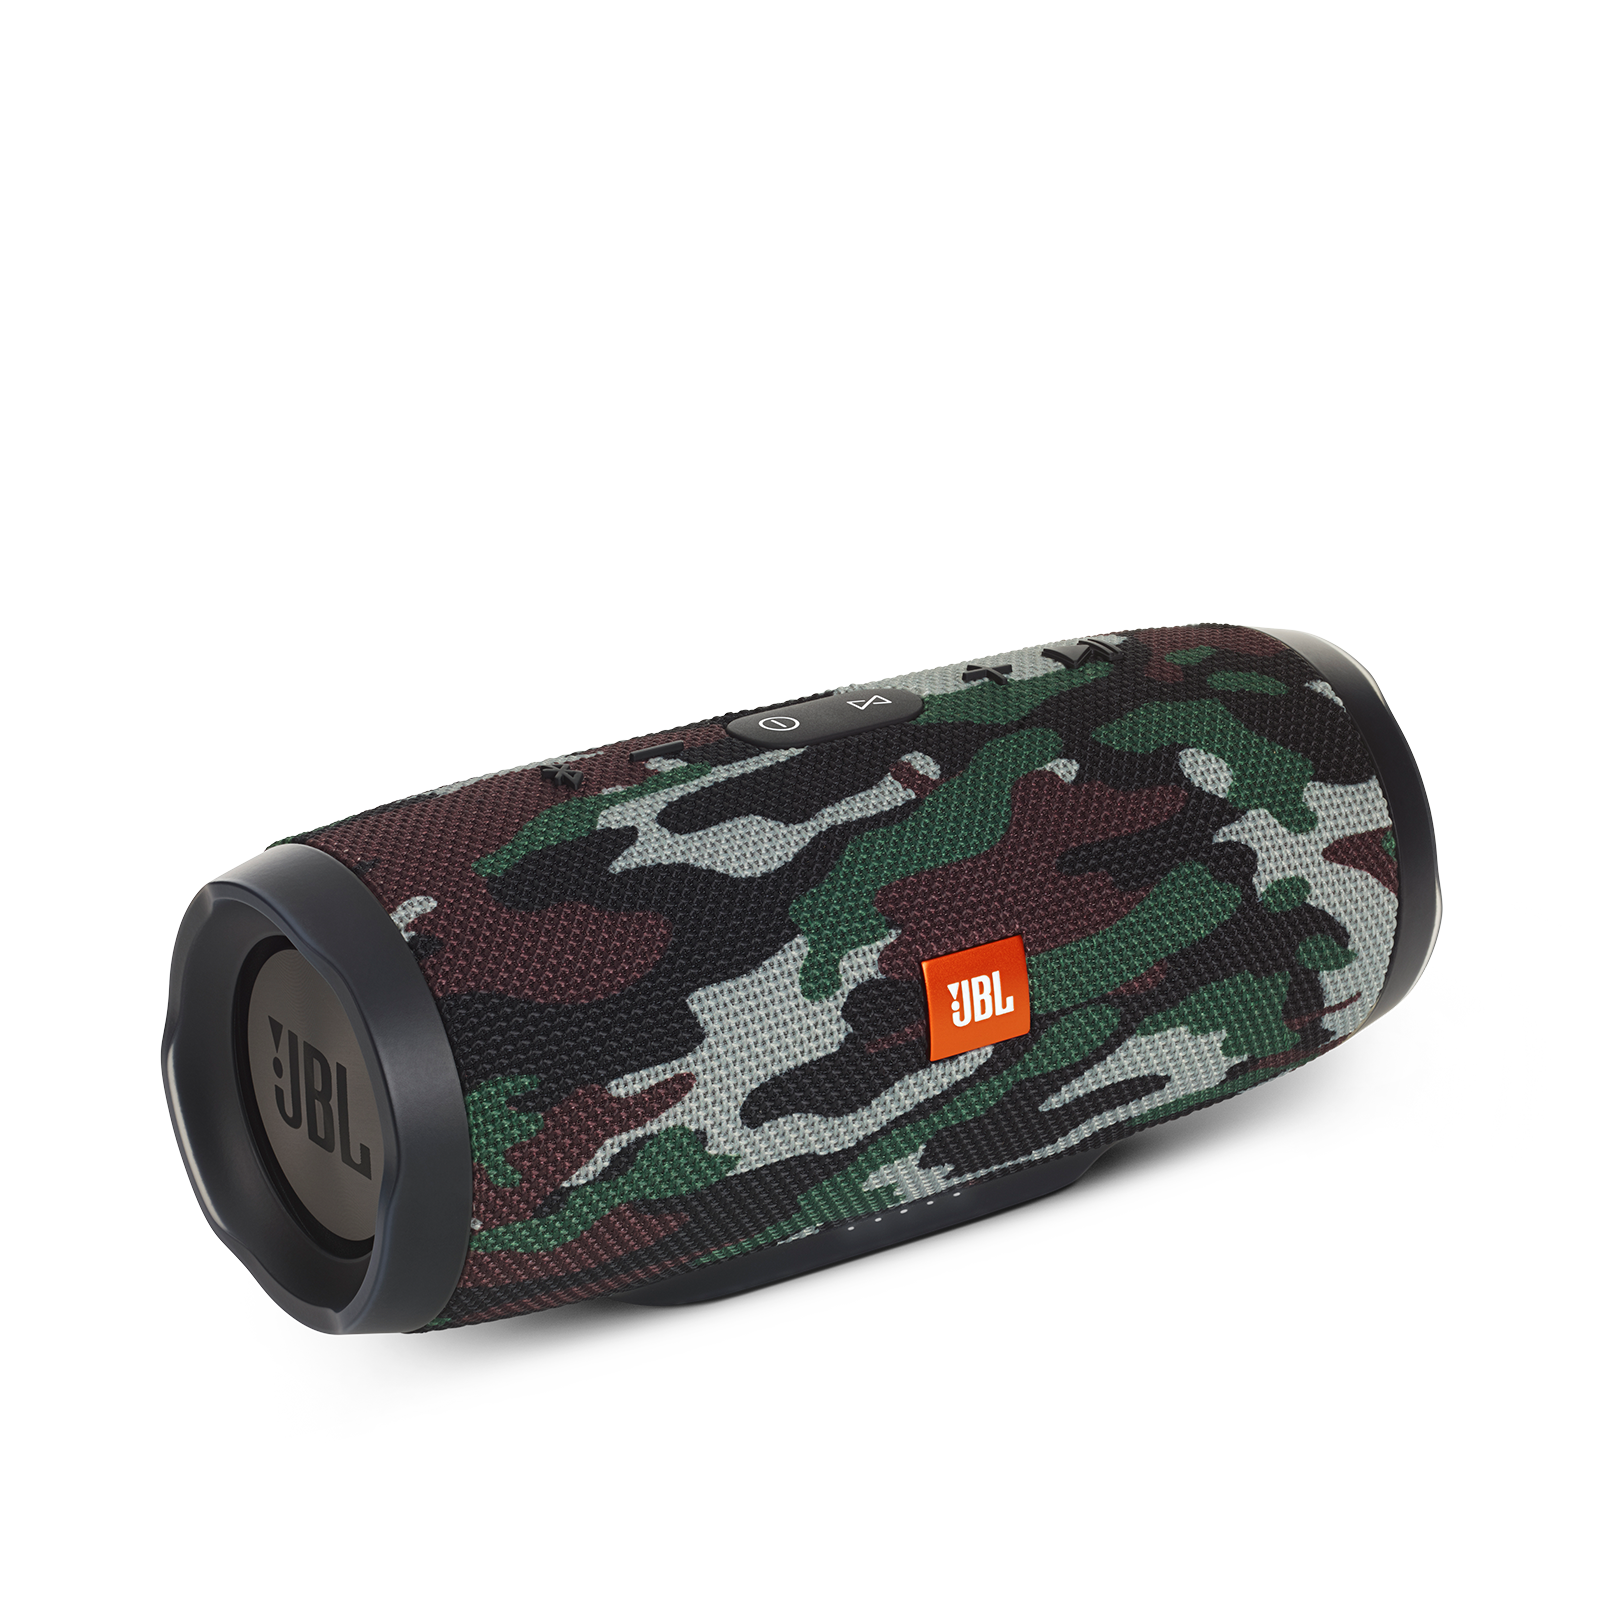 jbl xtreme special edition portable bluetooth speaker autos post. Black Bedroom Furniture Sets. Home Design Ideas